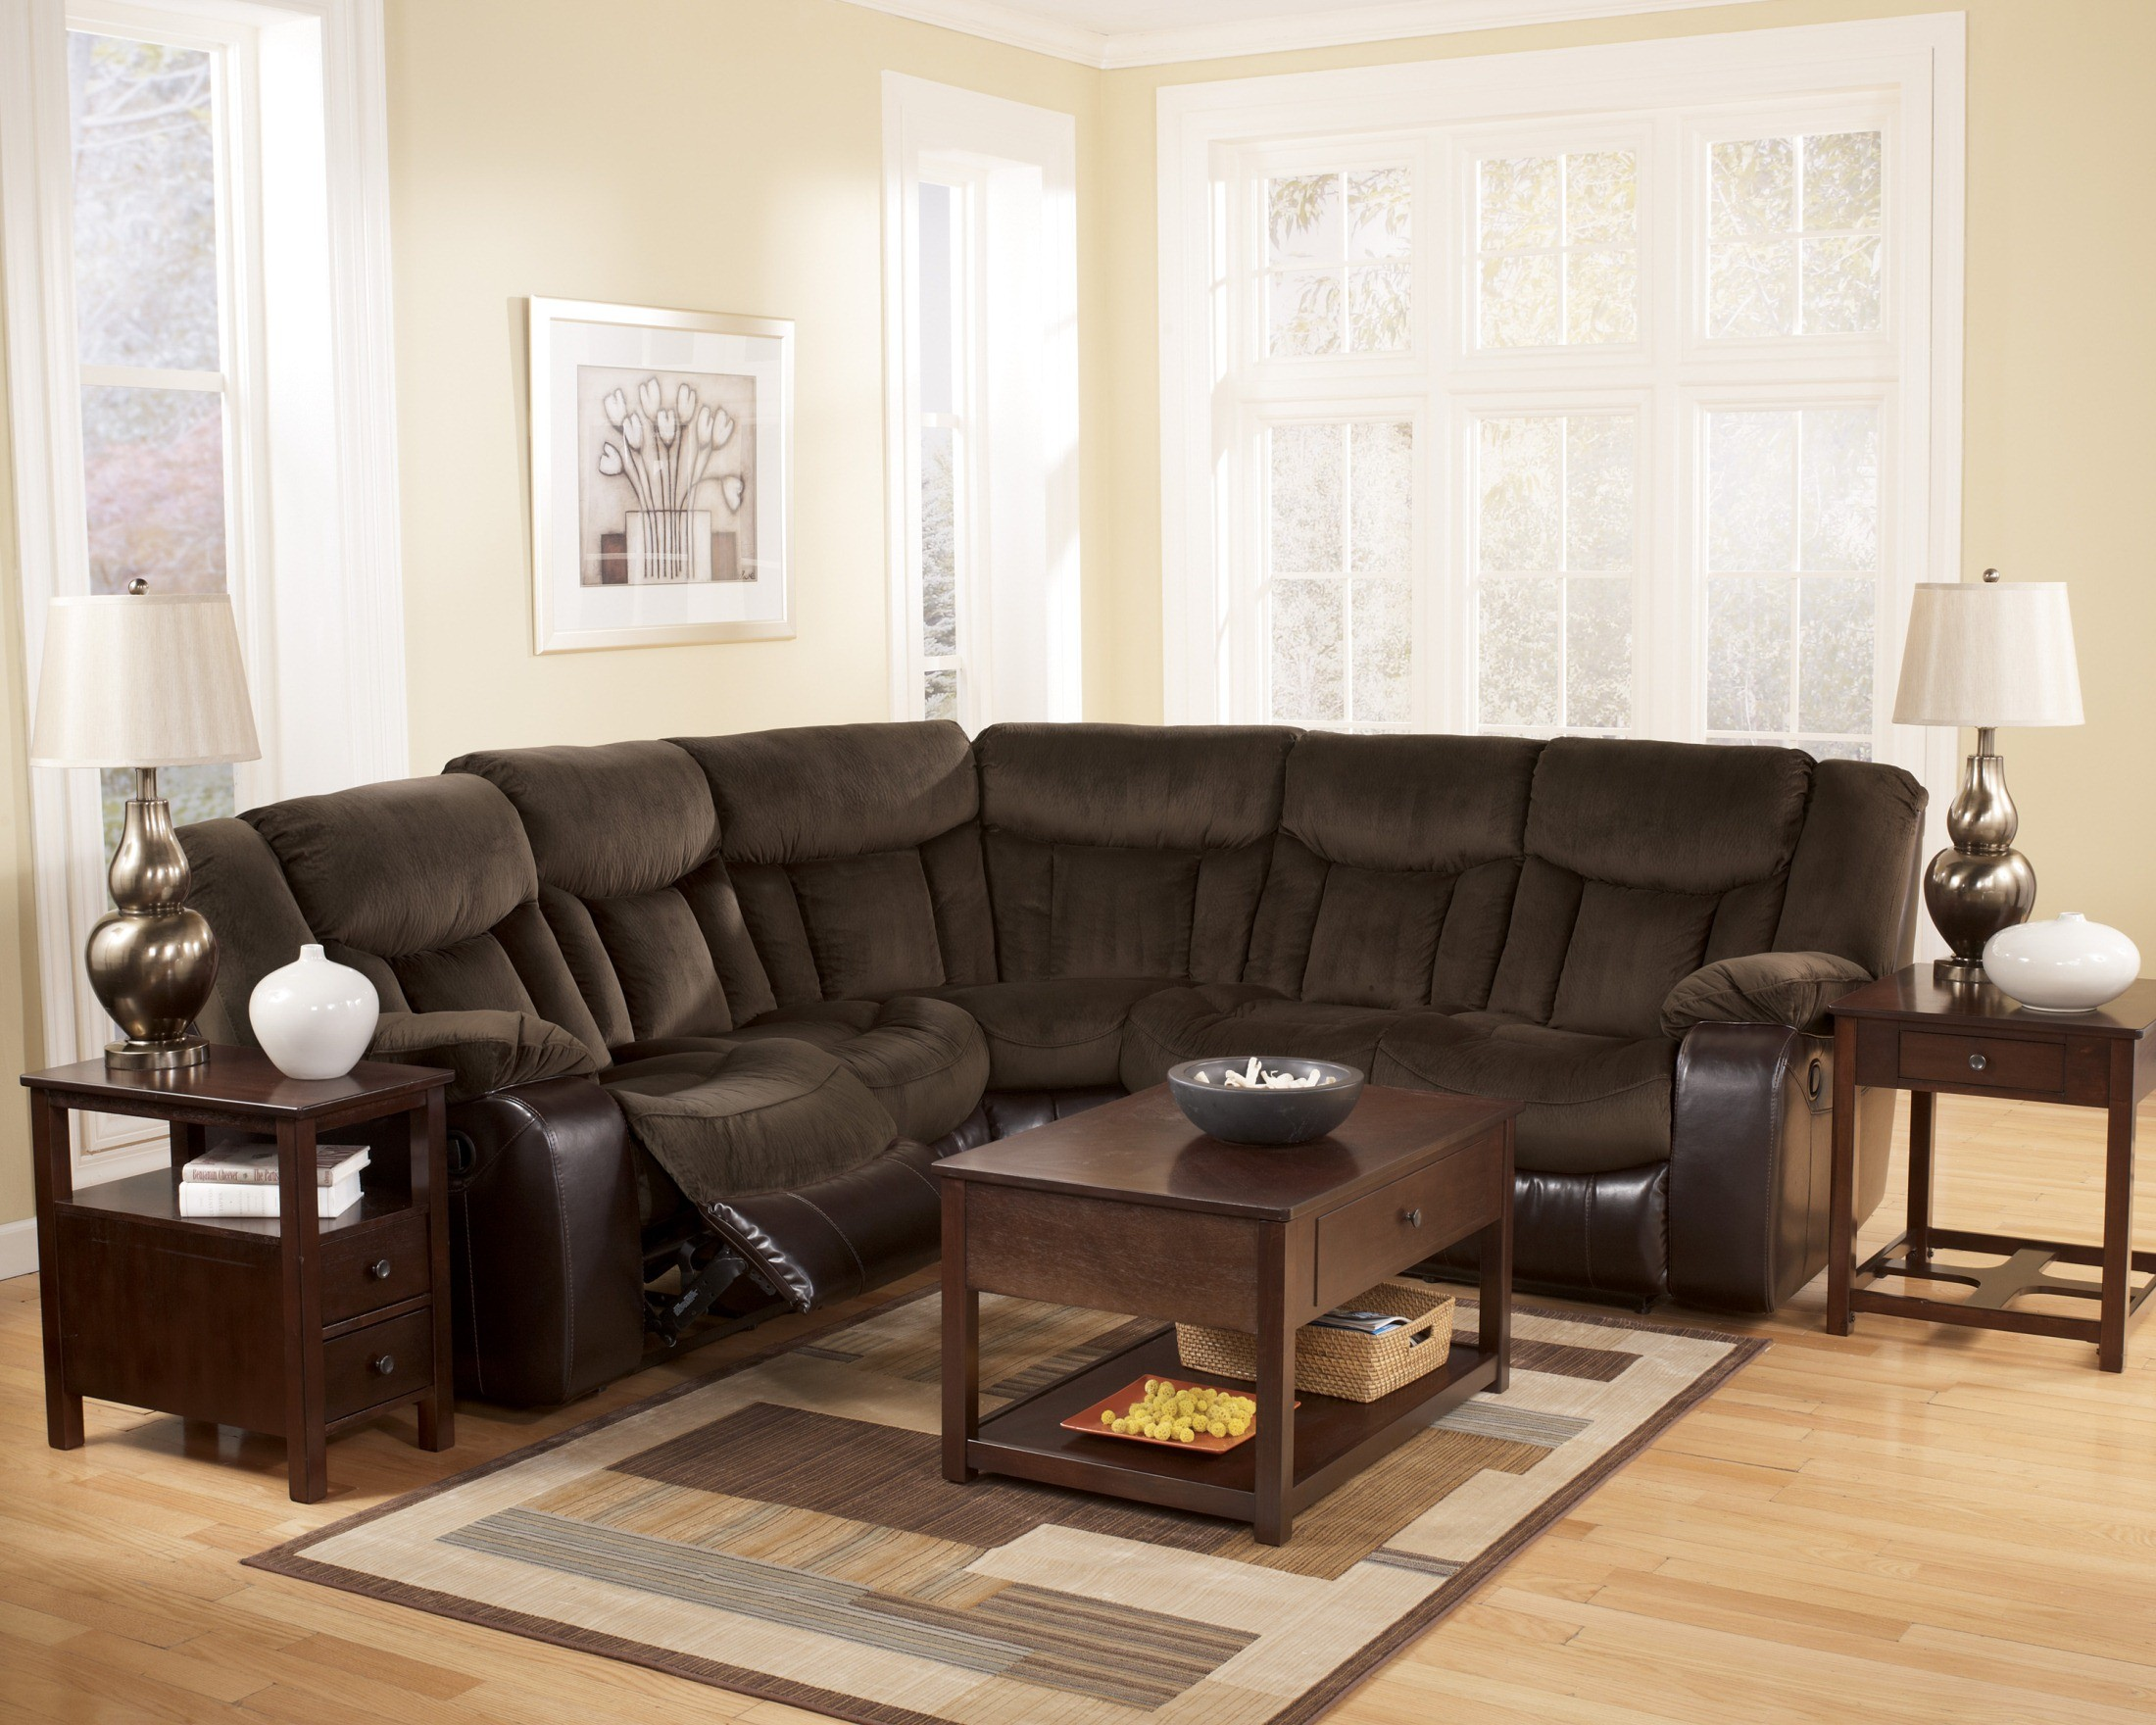 tafton java sectional from ashley 79202 48 49 coleman